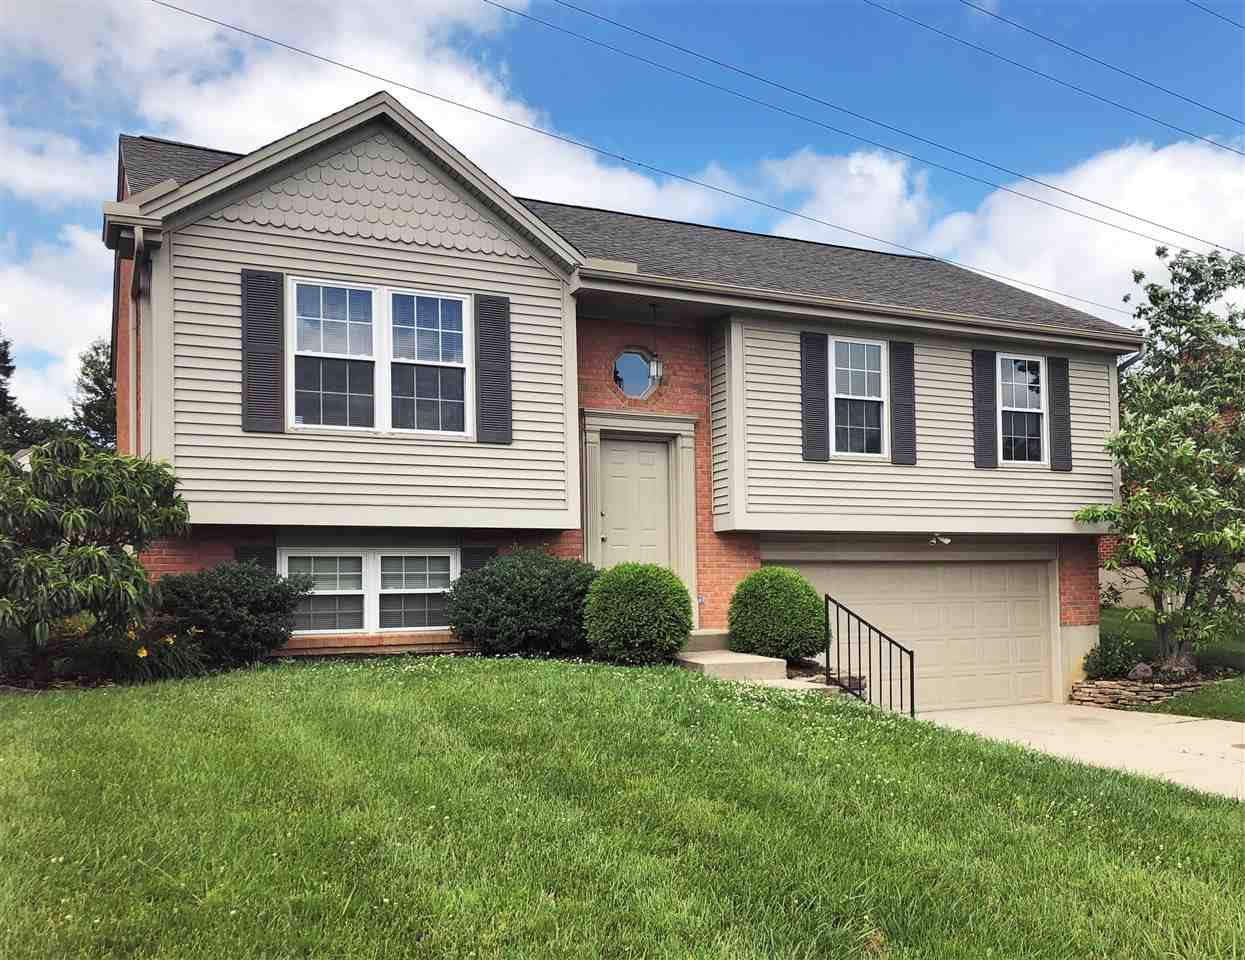 Photo 1 for 48 Creekside Dr Florence, KY 41042